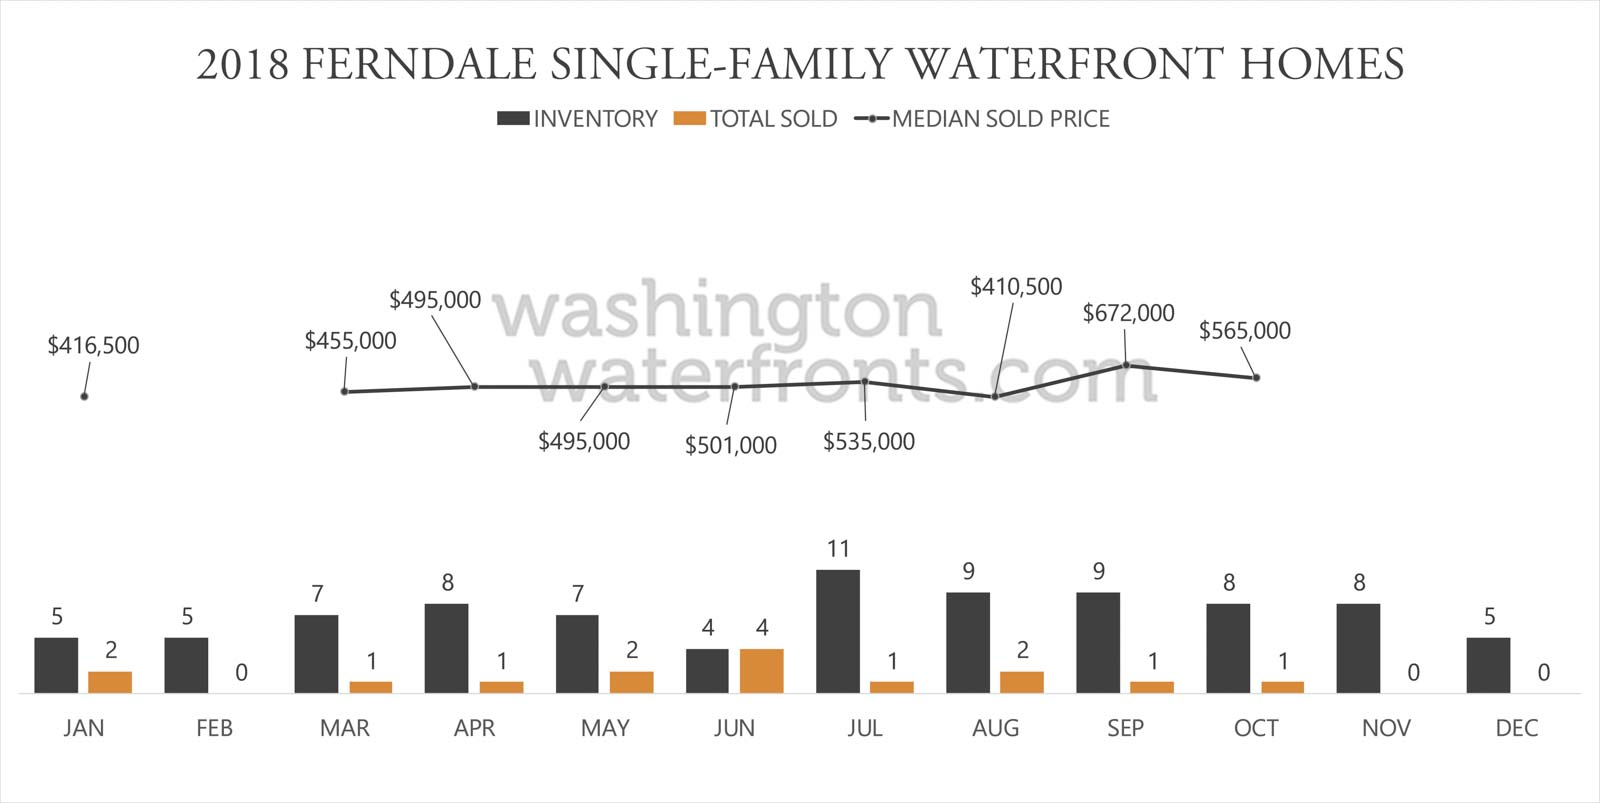 Ferndale Waterfront Inventory